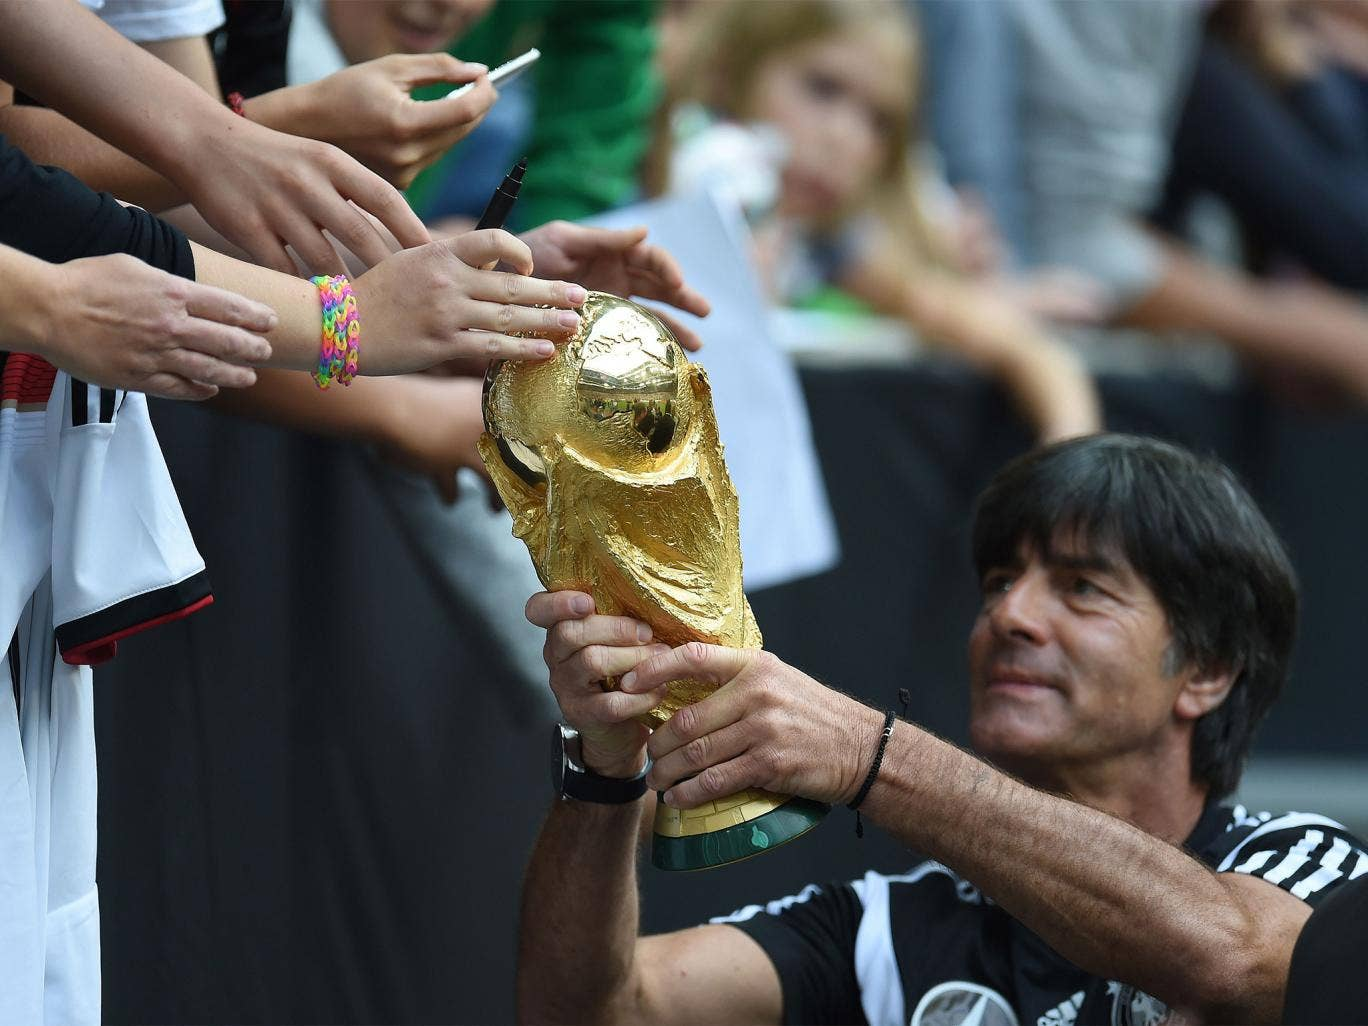 45,000 fans turned out for open training and a glimpse of the World Cup trophy, held by Germany coach Joachim Löw, ahead of his side's sell-out friendly match against Argentina – a repeat of the final in Brazil this summer